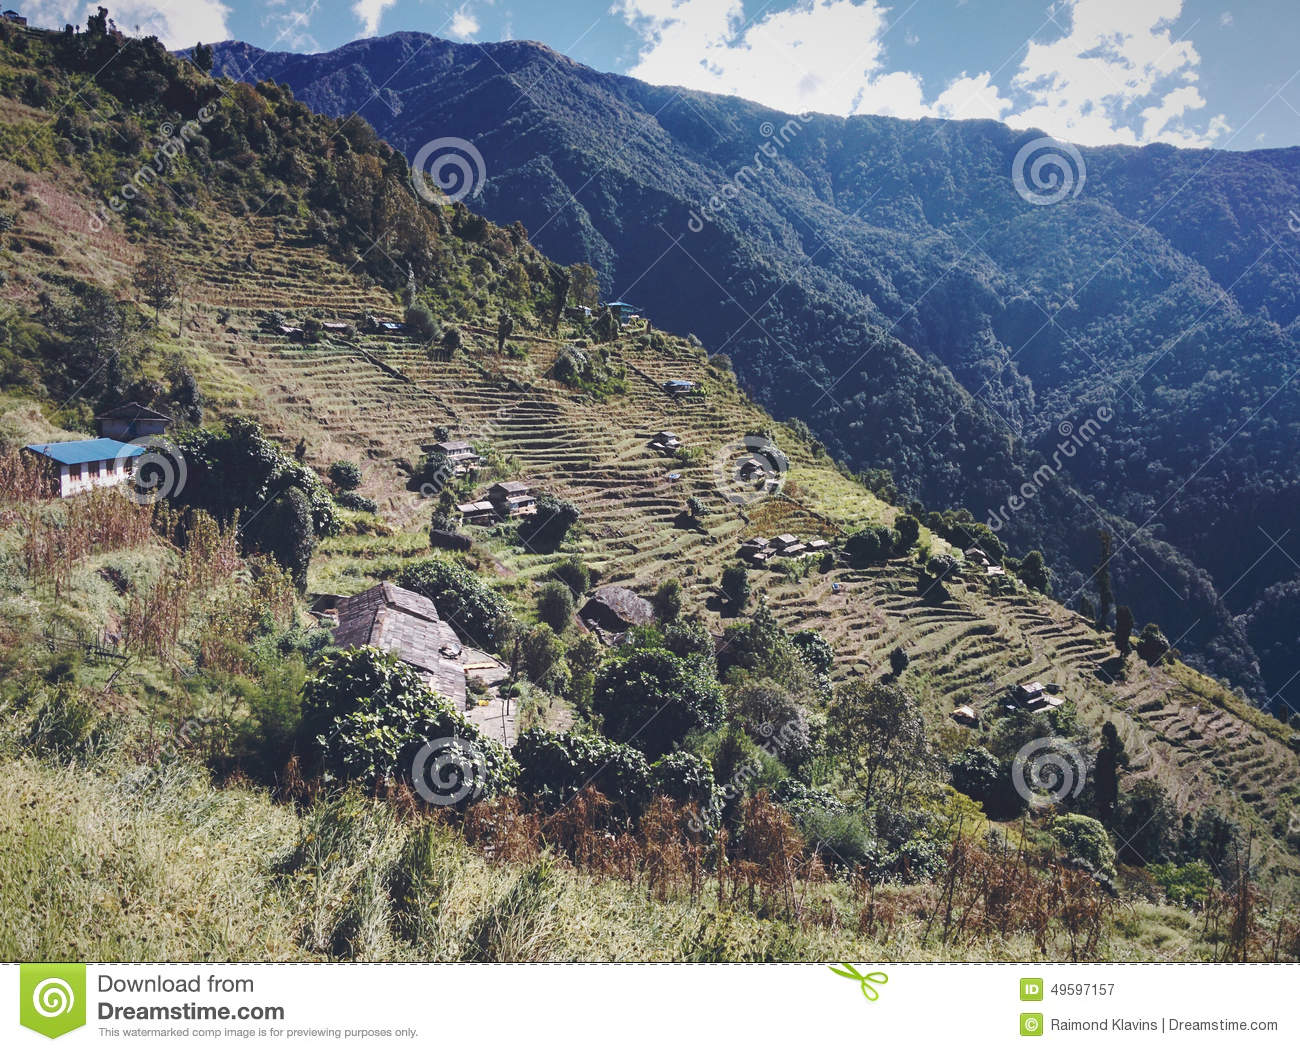 Terraces in Mountains with Clouds and Valley